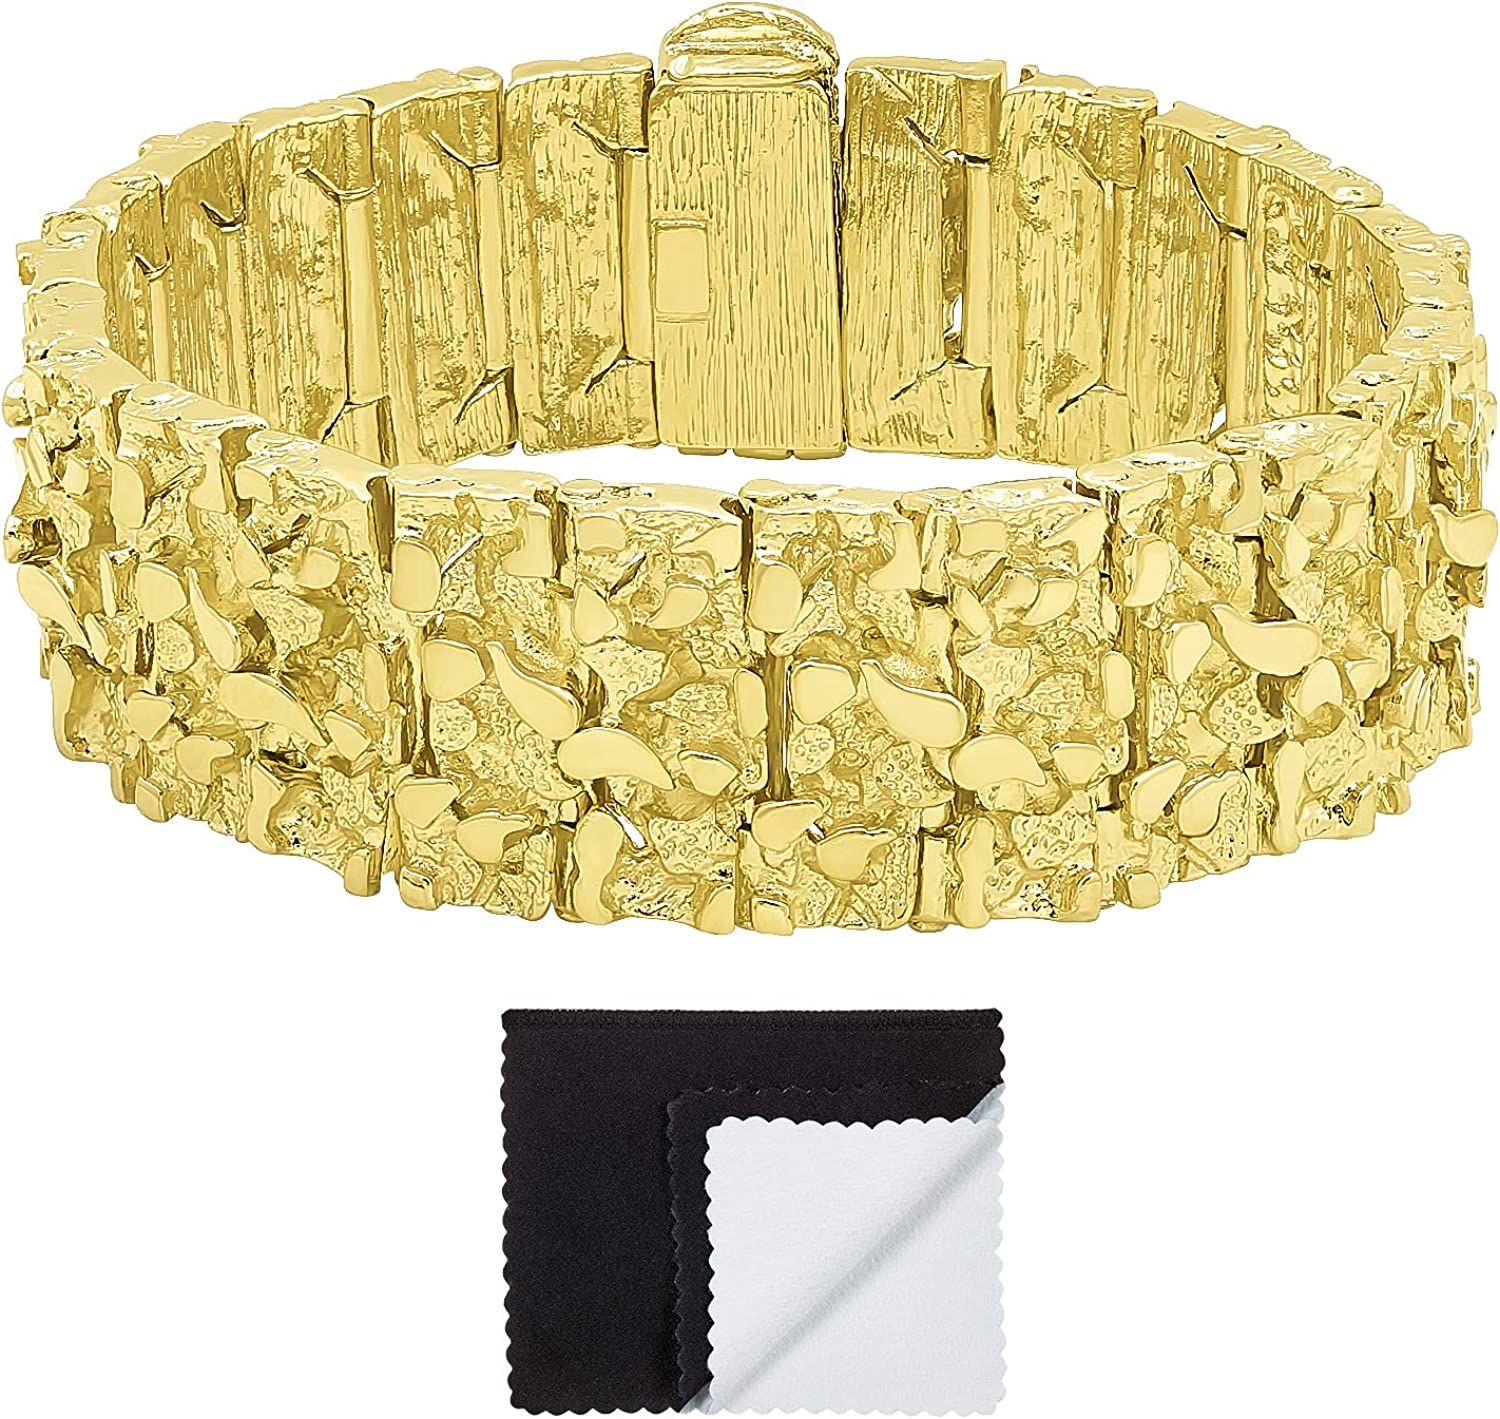 The Bling Factory Thick 22.5mm 14k Gold Plated Chunky Nugget Textured Bracelet + Microfiber